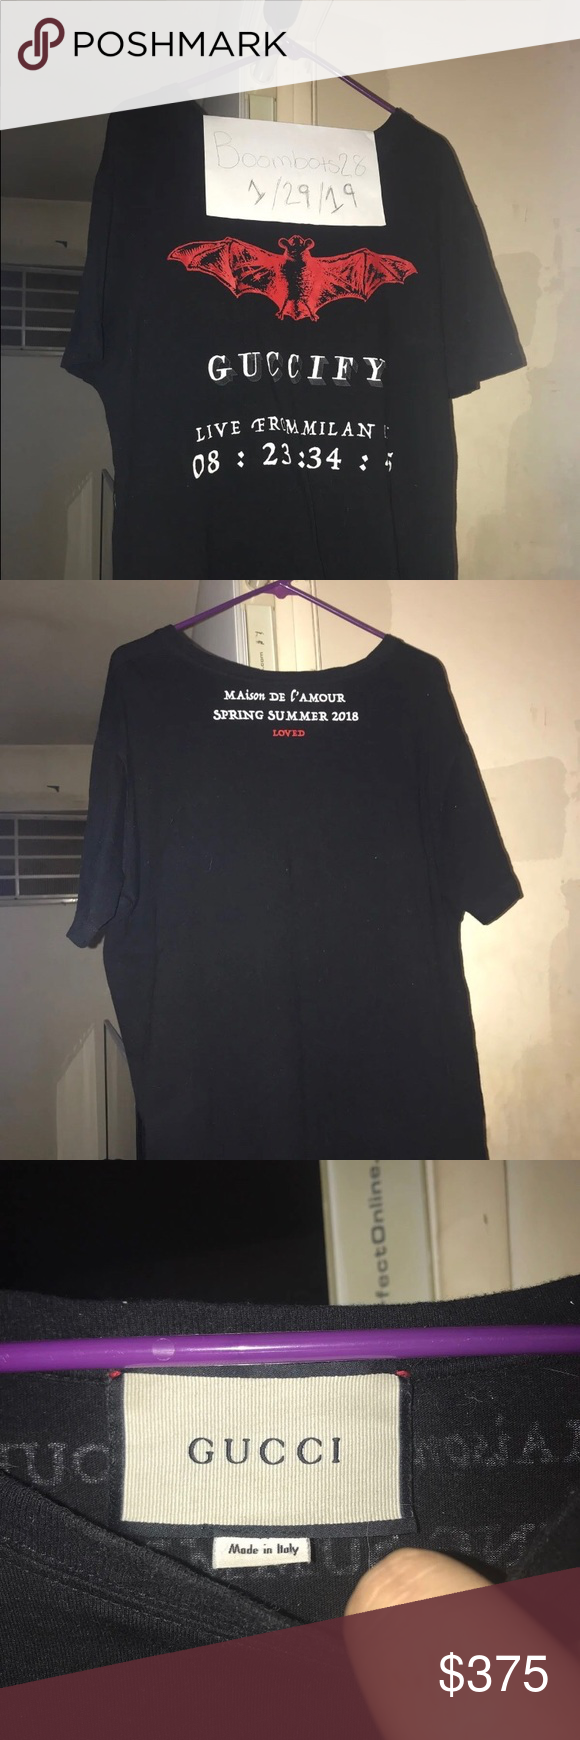 "0b99c96f Gucci ""Live In Milan"" Tee Gucci's ""Guccify Live in Milan"" tee shirt in  black *Tag size is XL but fits more like a large* *WILL SHIP ASAP* Gucci  Shirts Tees ..."